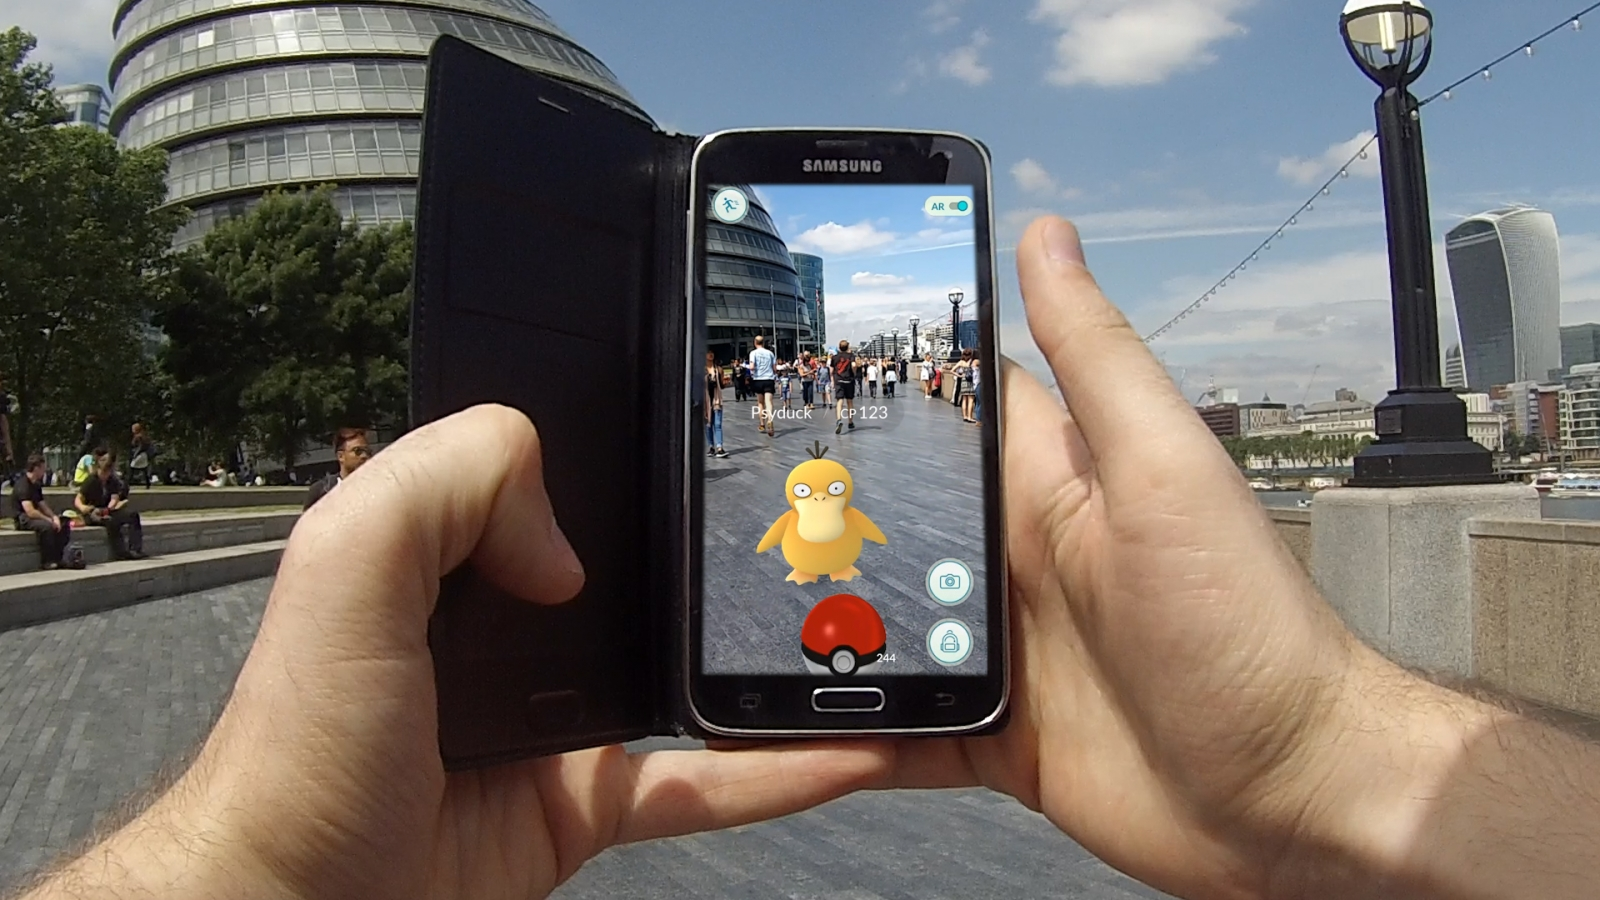 Pokemon Go demo in London